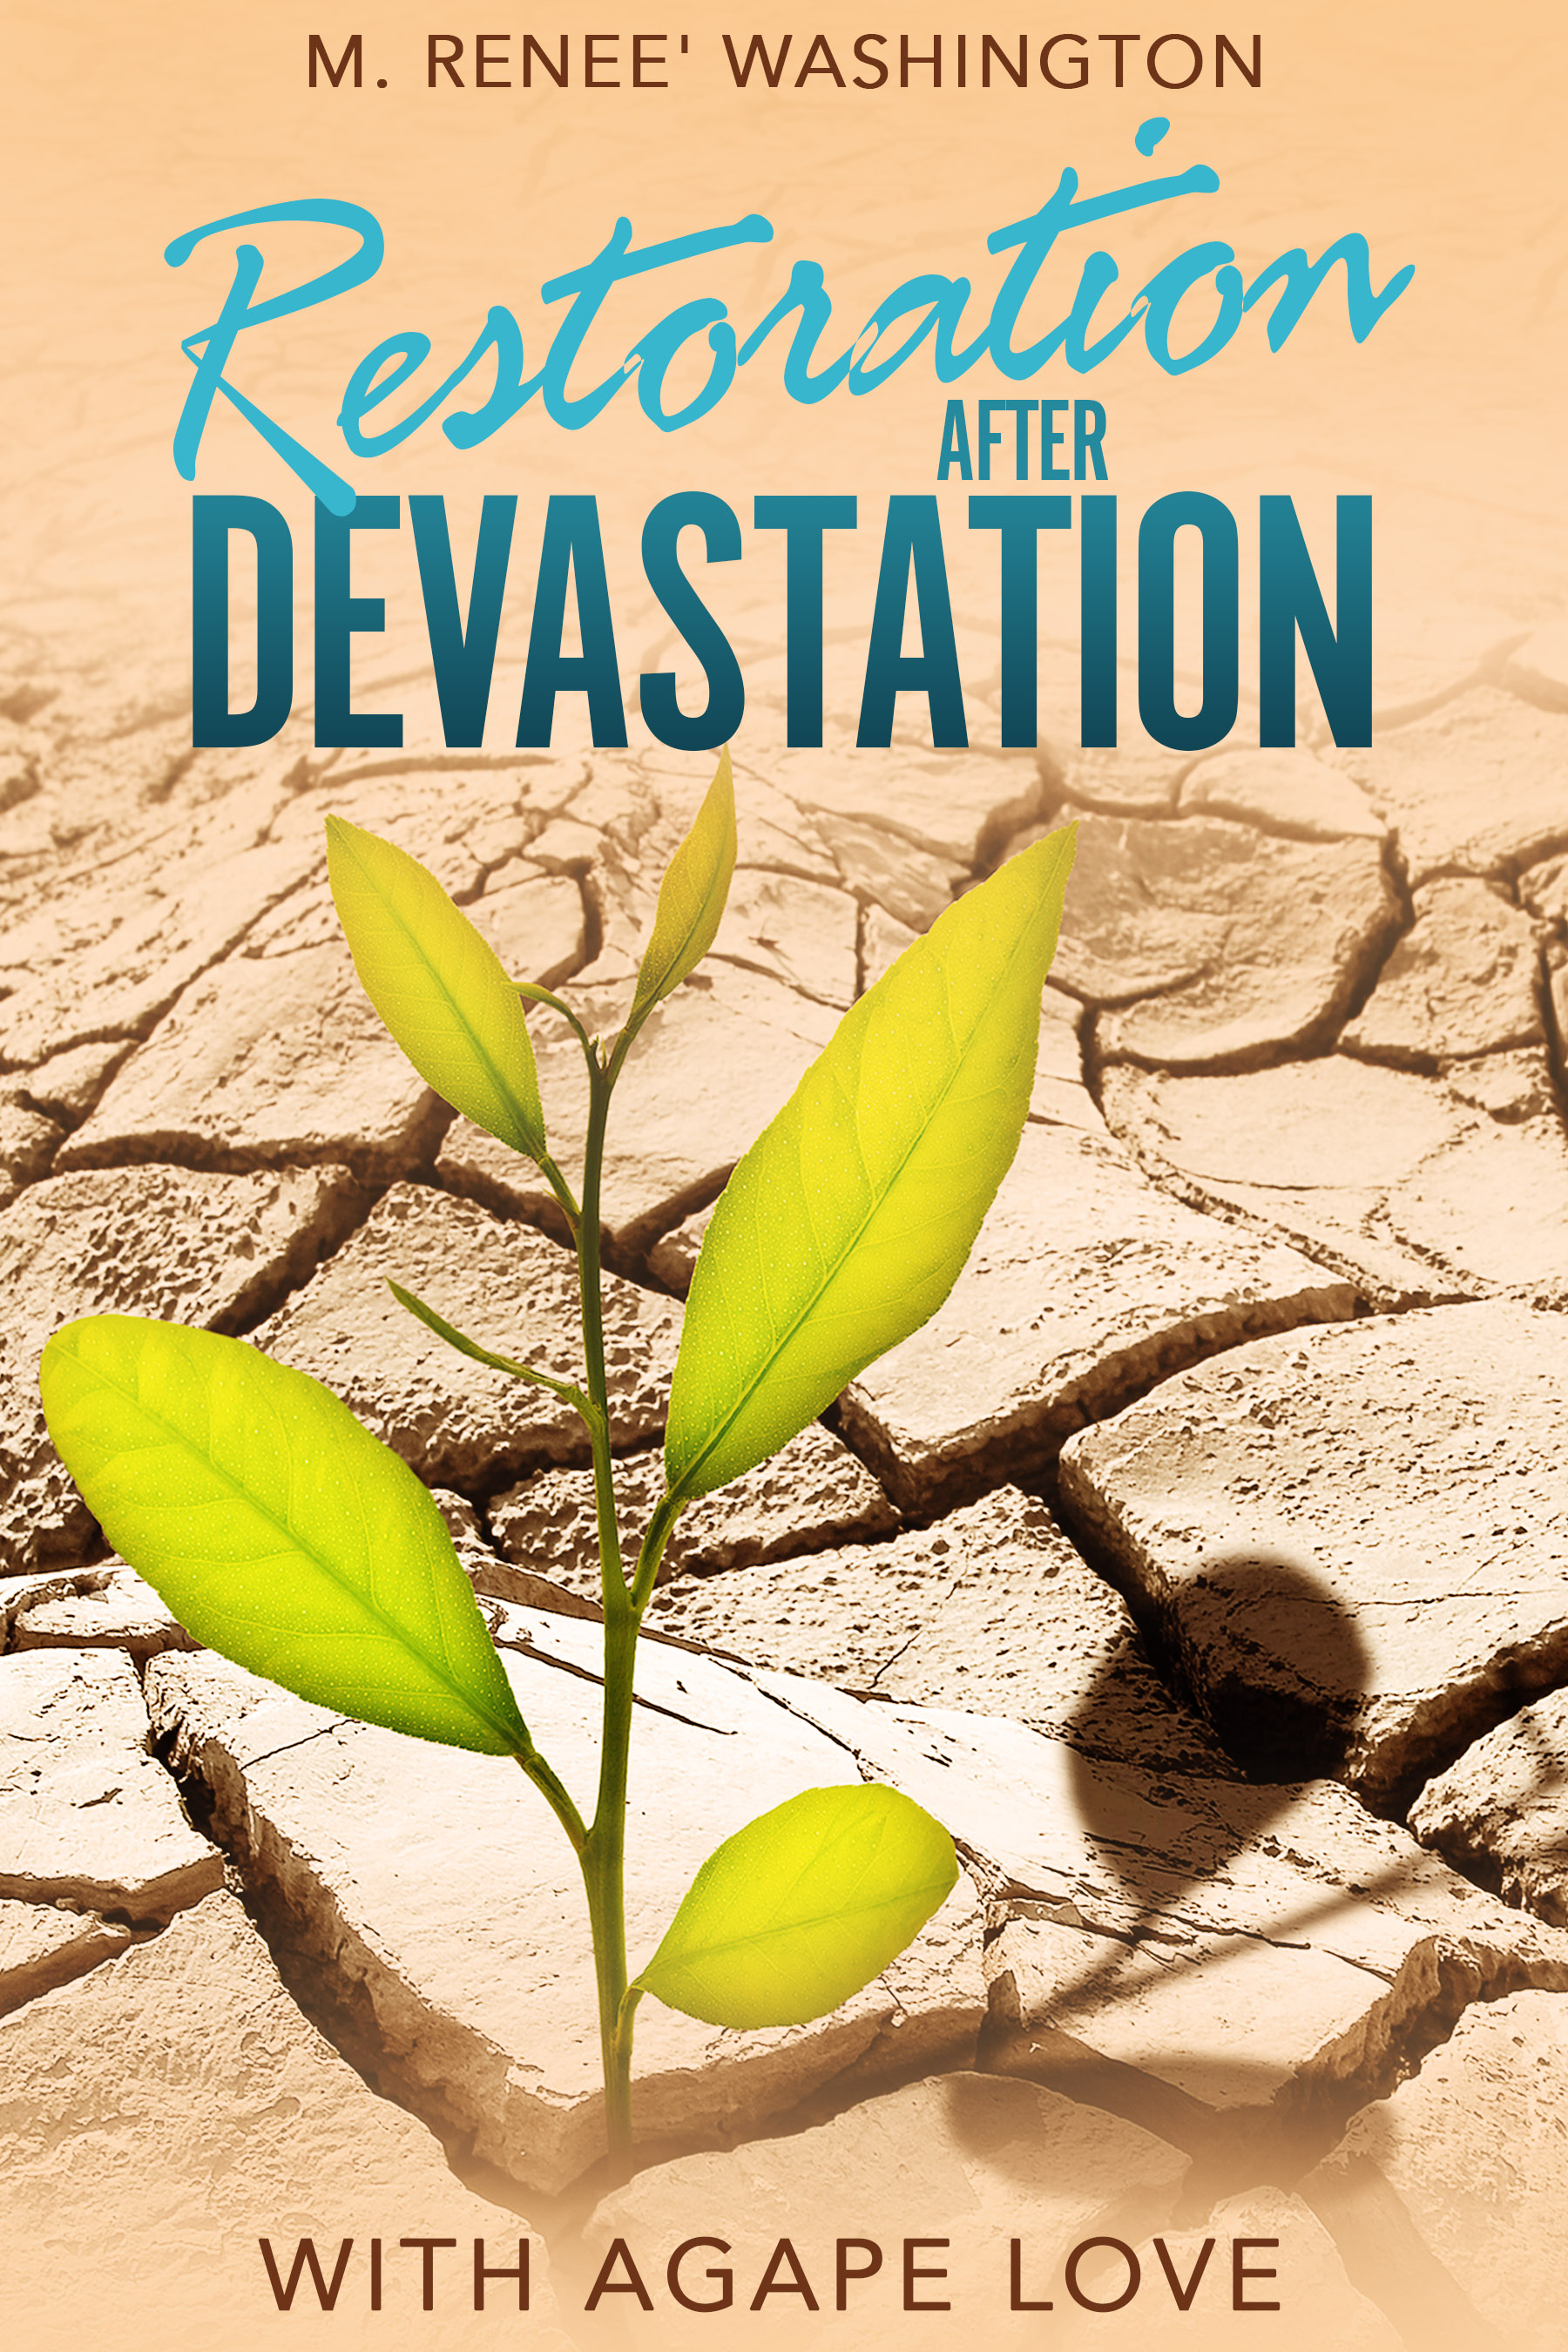 Restoration After Devastation with Agape Love